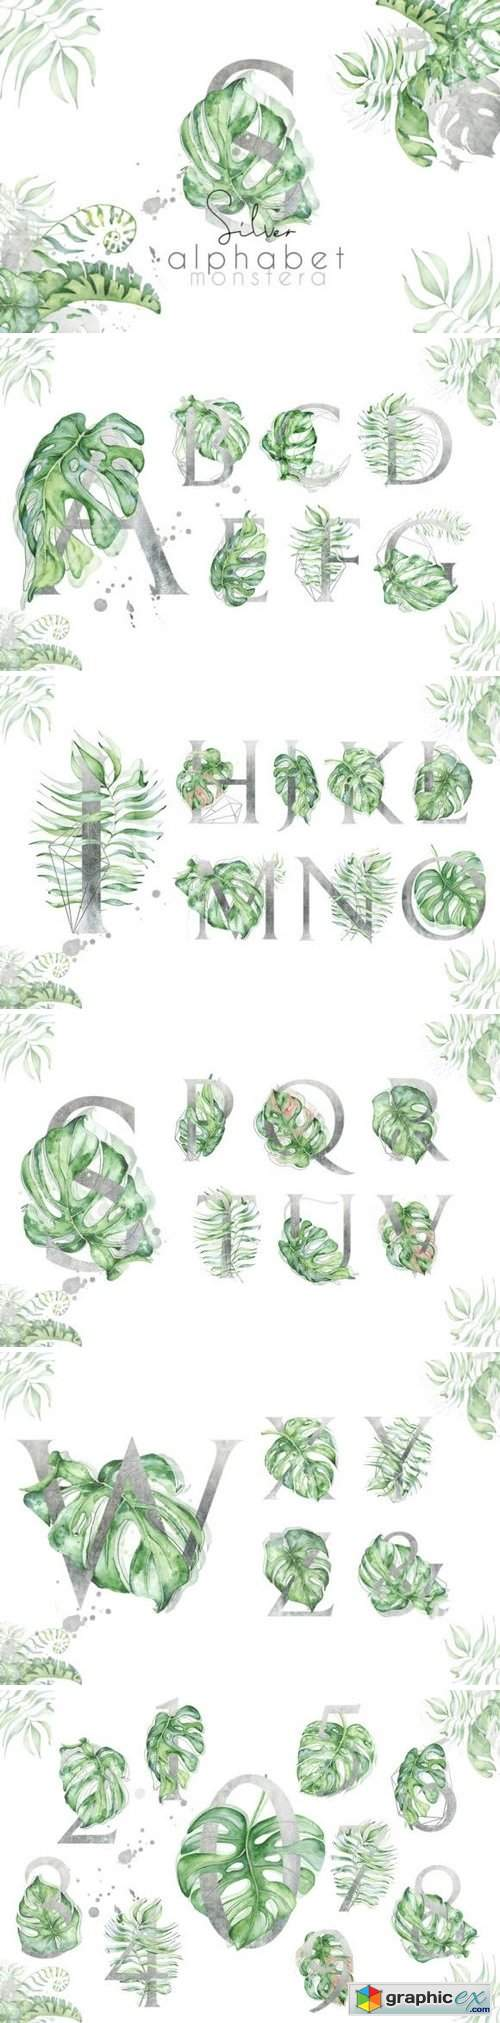 Silver Monstera - tropical alphabet